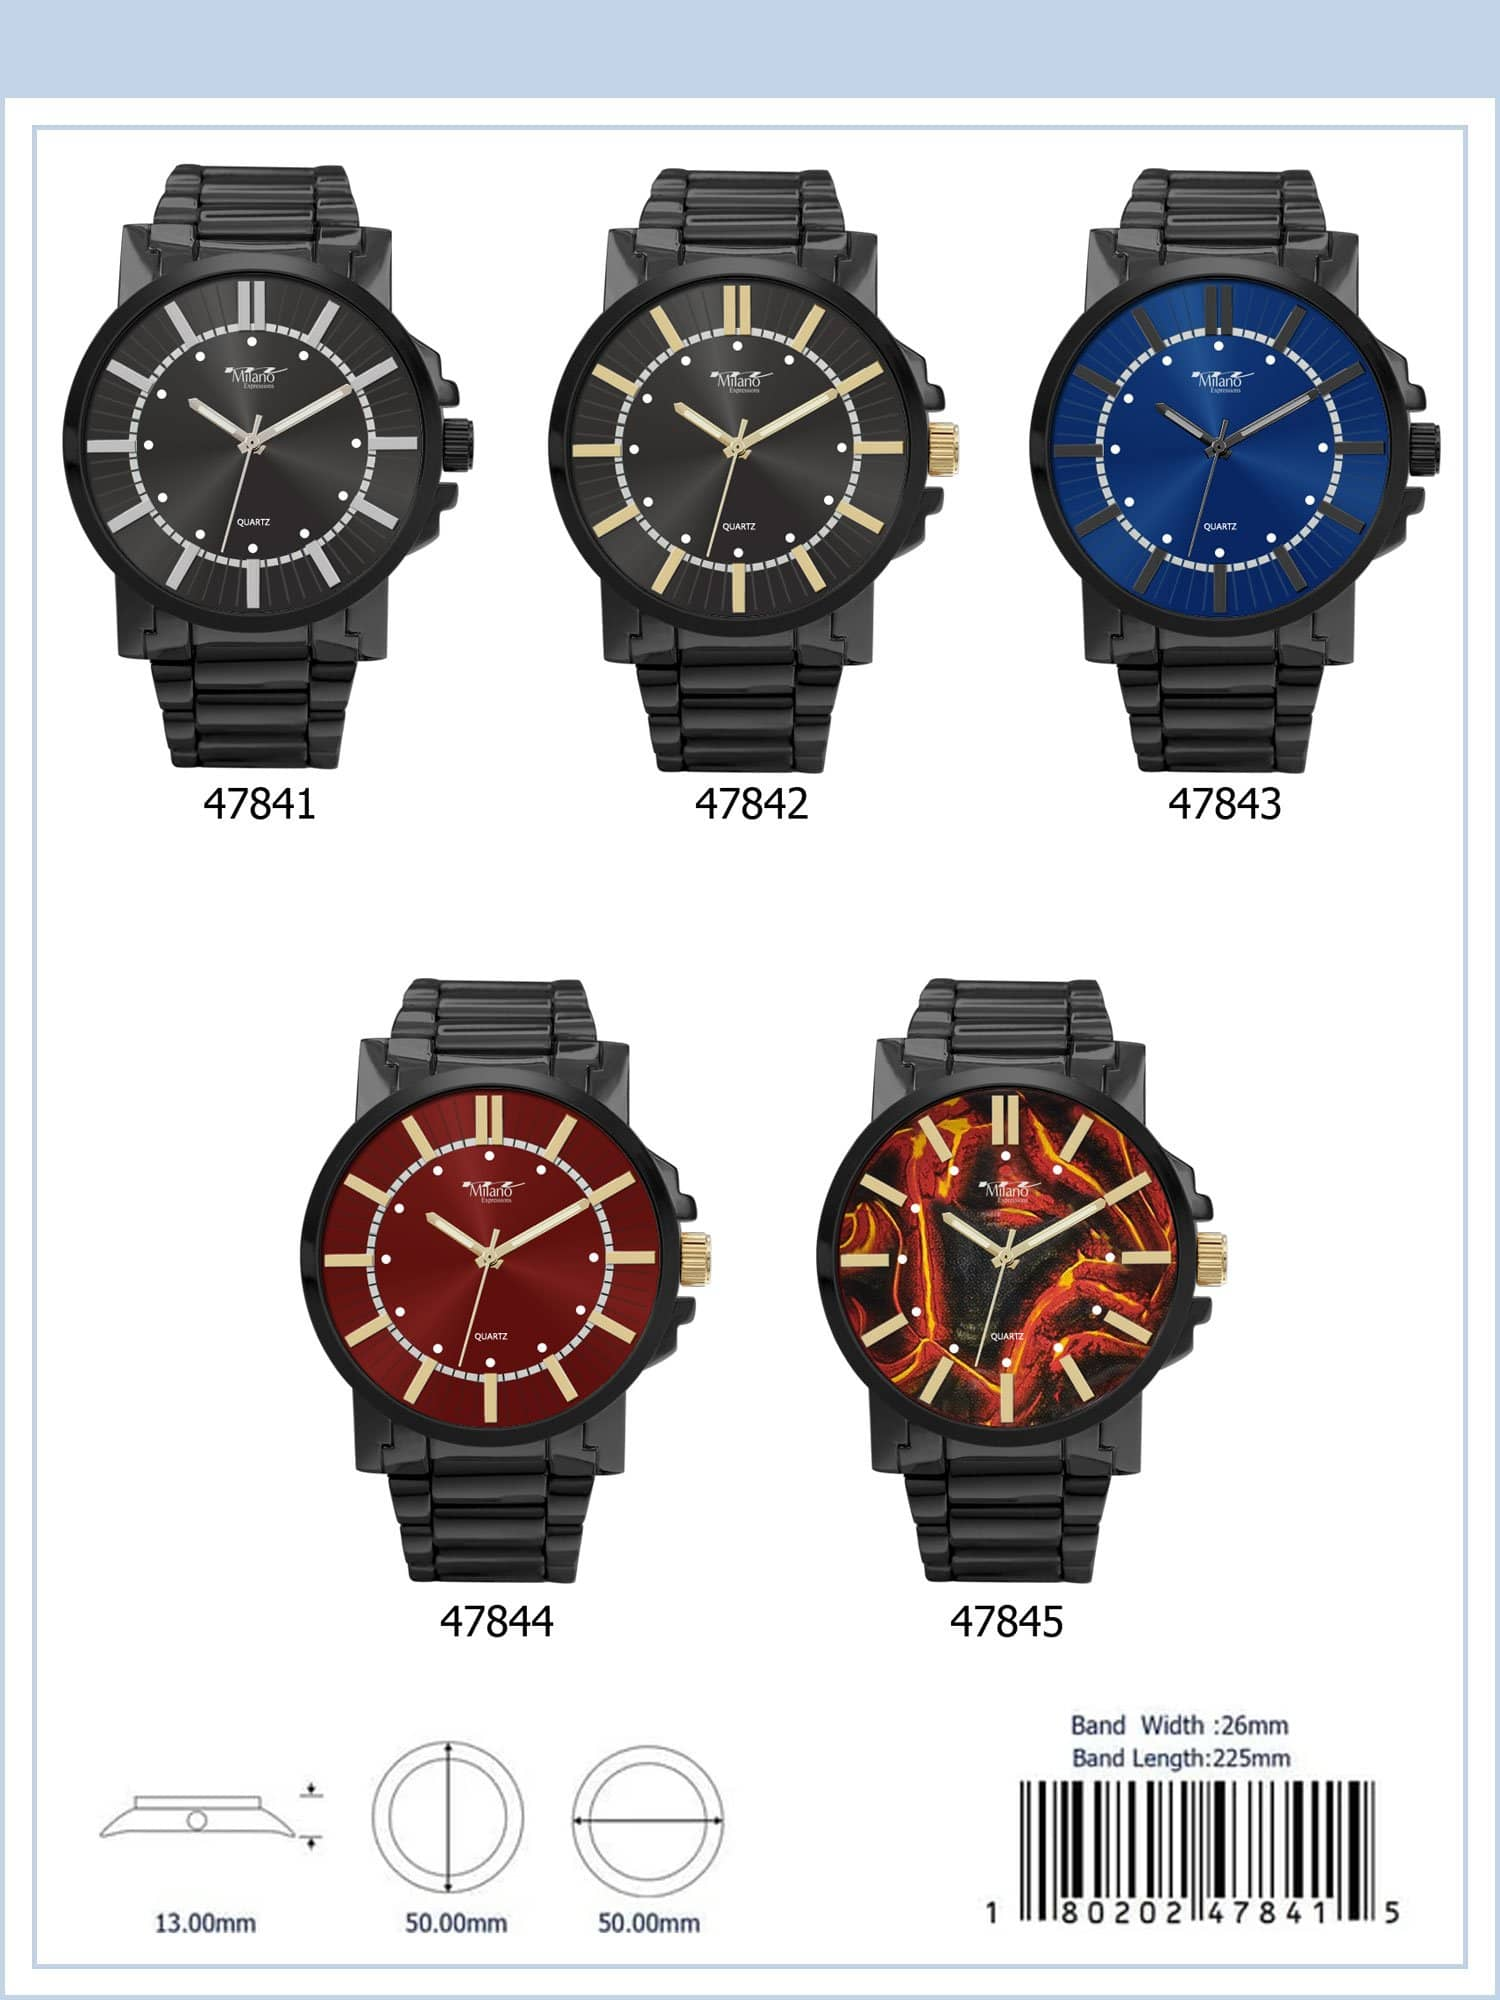 4784 - Metal Band Watch